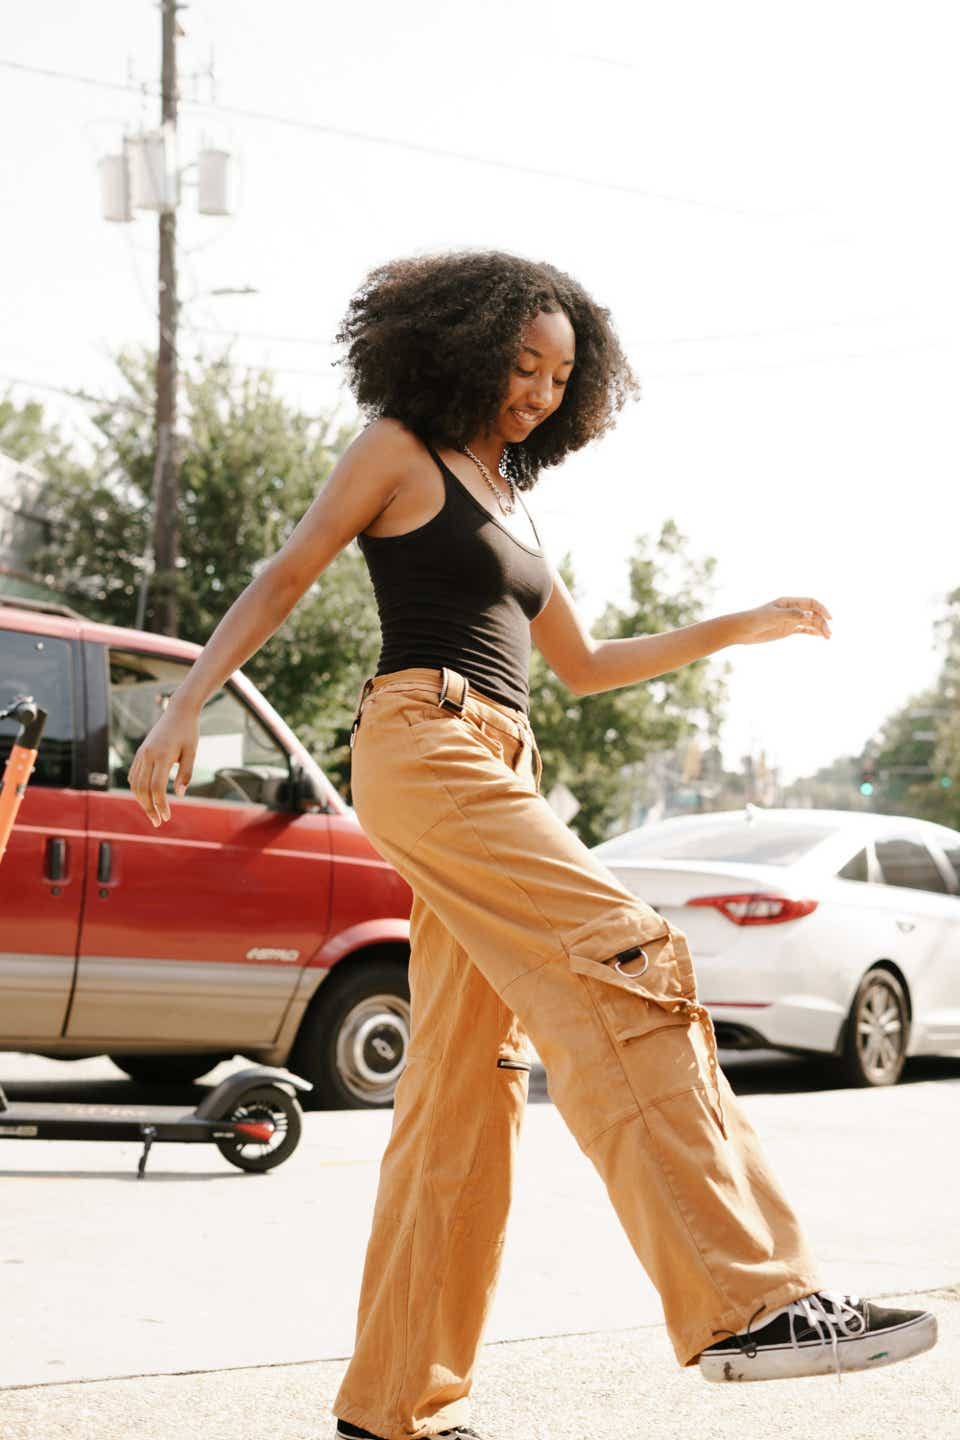 Justyce is dancing while wearing a black tank top, yellow cargo pants, and black Vans sneakers.